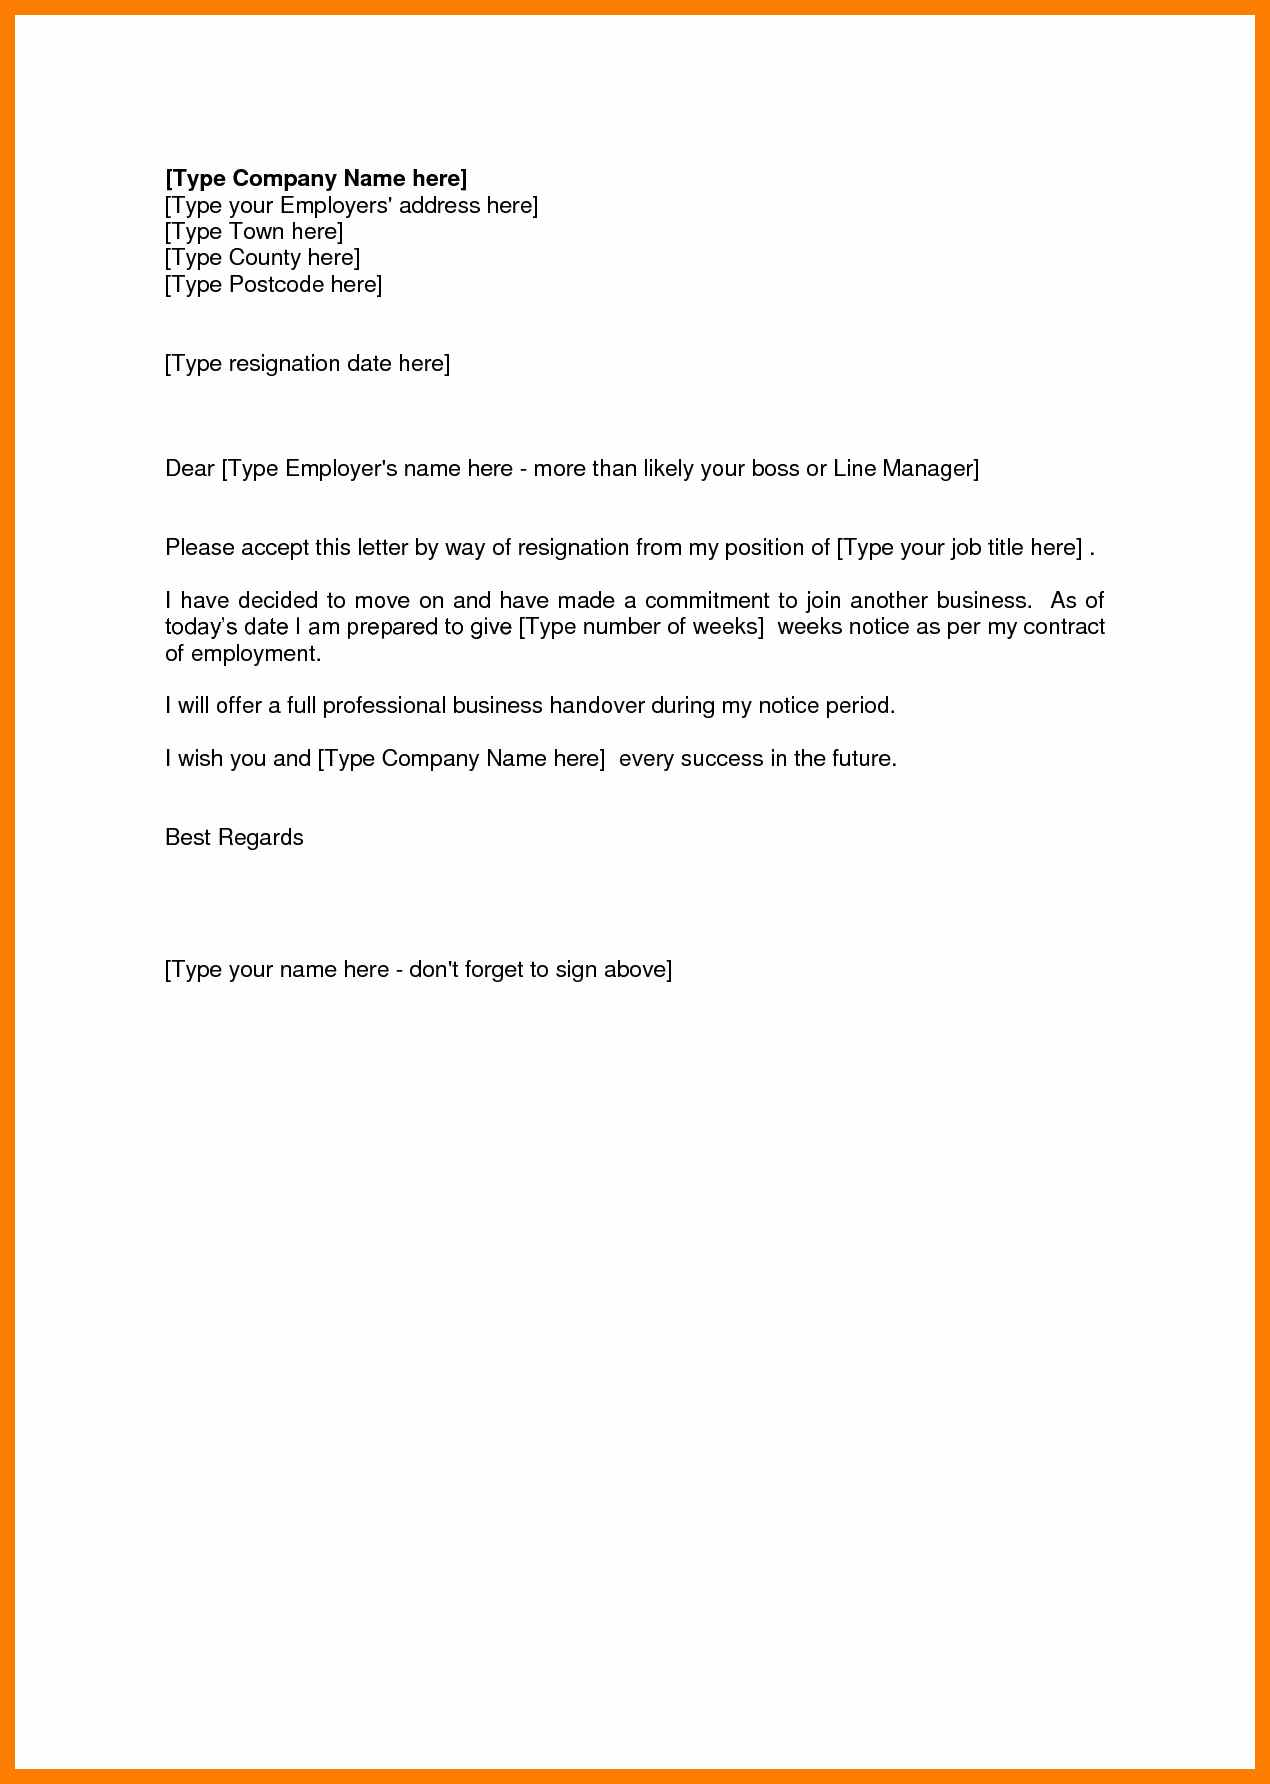 Short Resignation Letter Template - Sample Notice Resignation Good Resume format Professional Letter